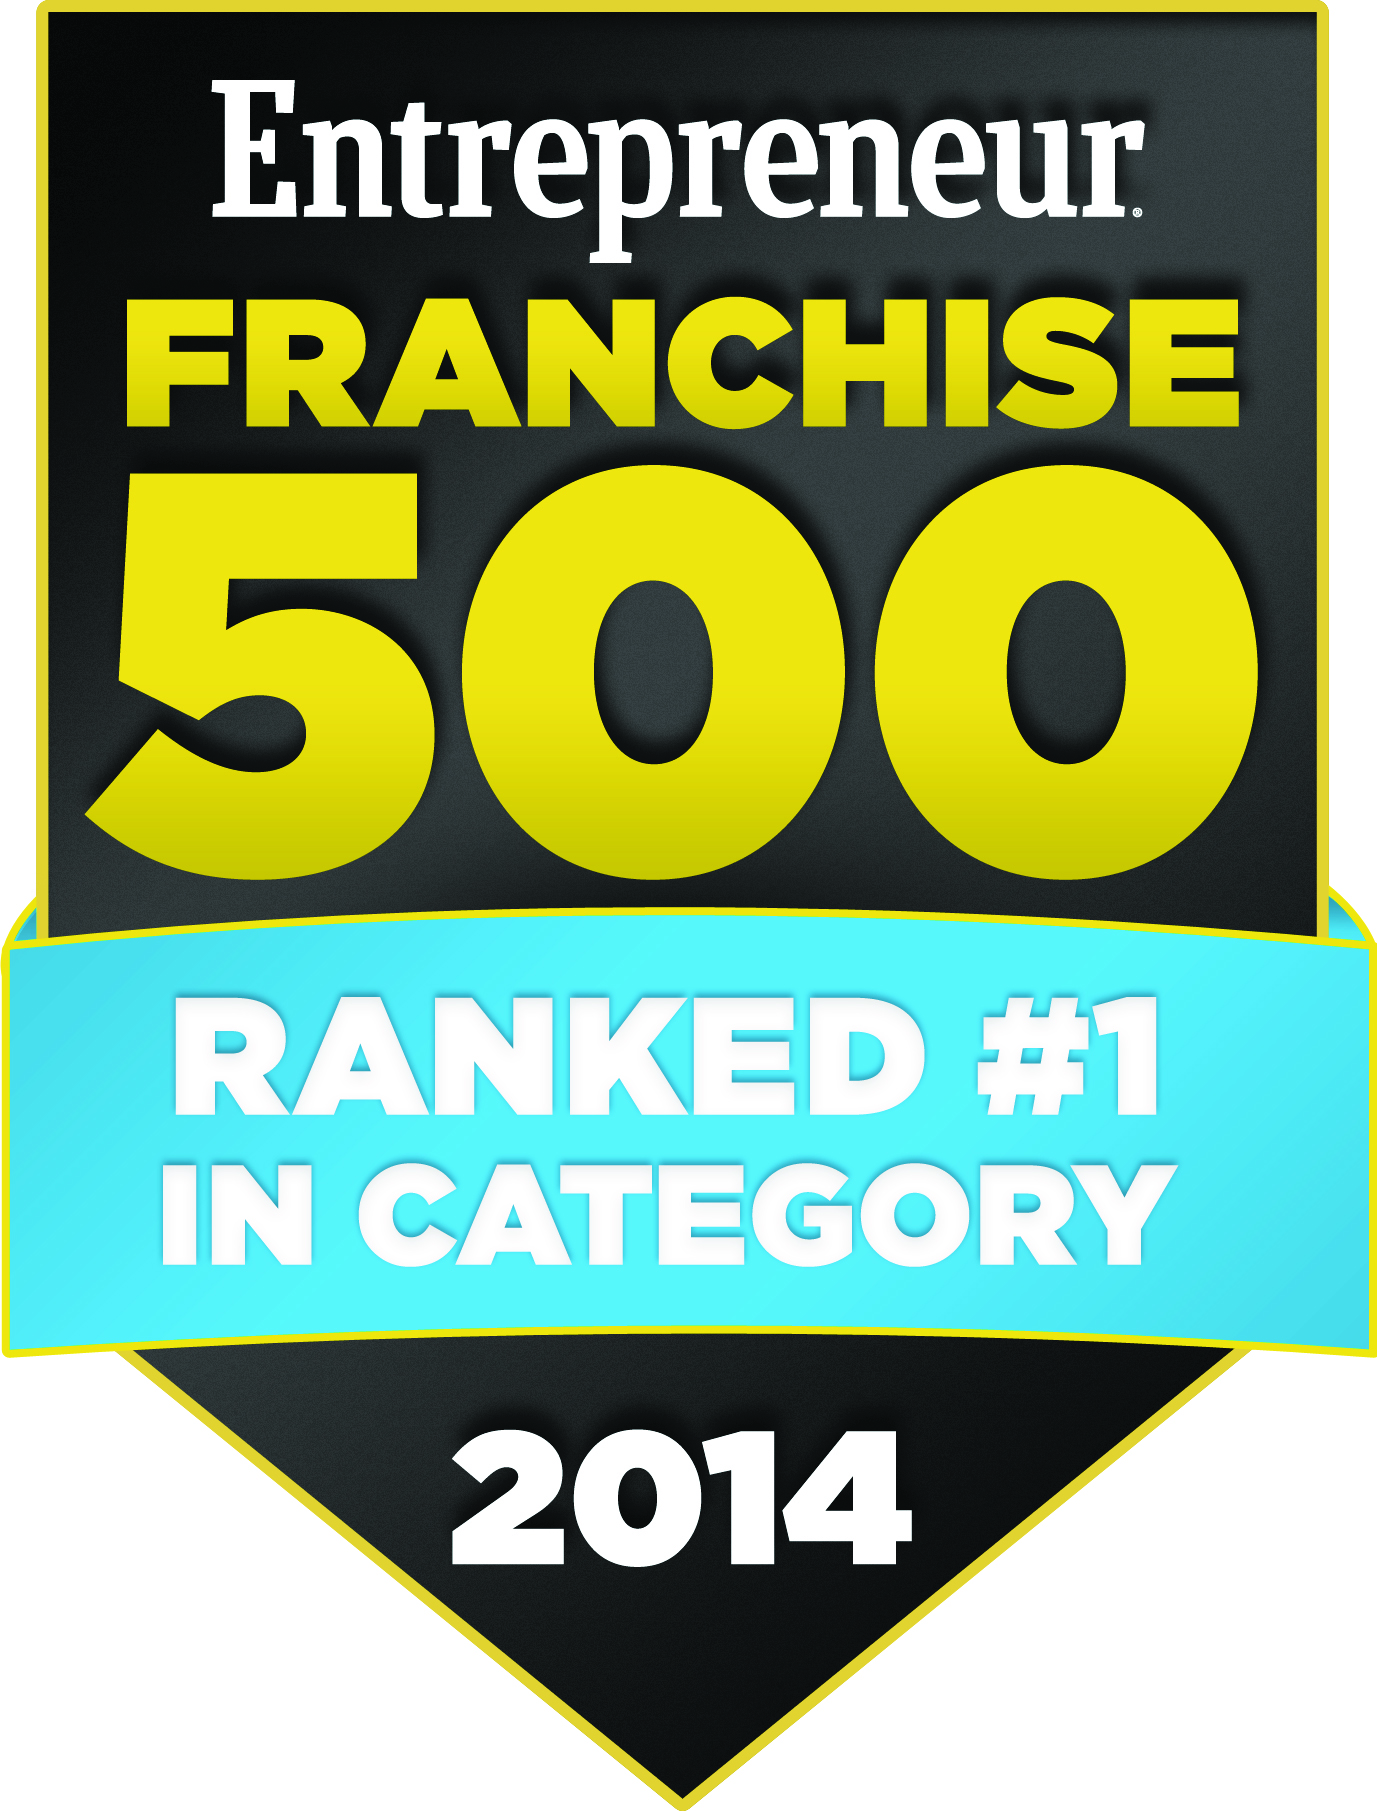 franchise-500-2014-badge-ranked-1-in-category